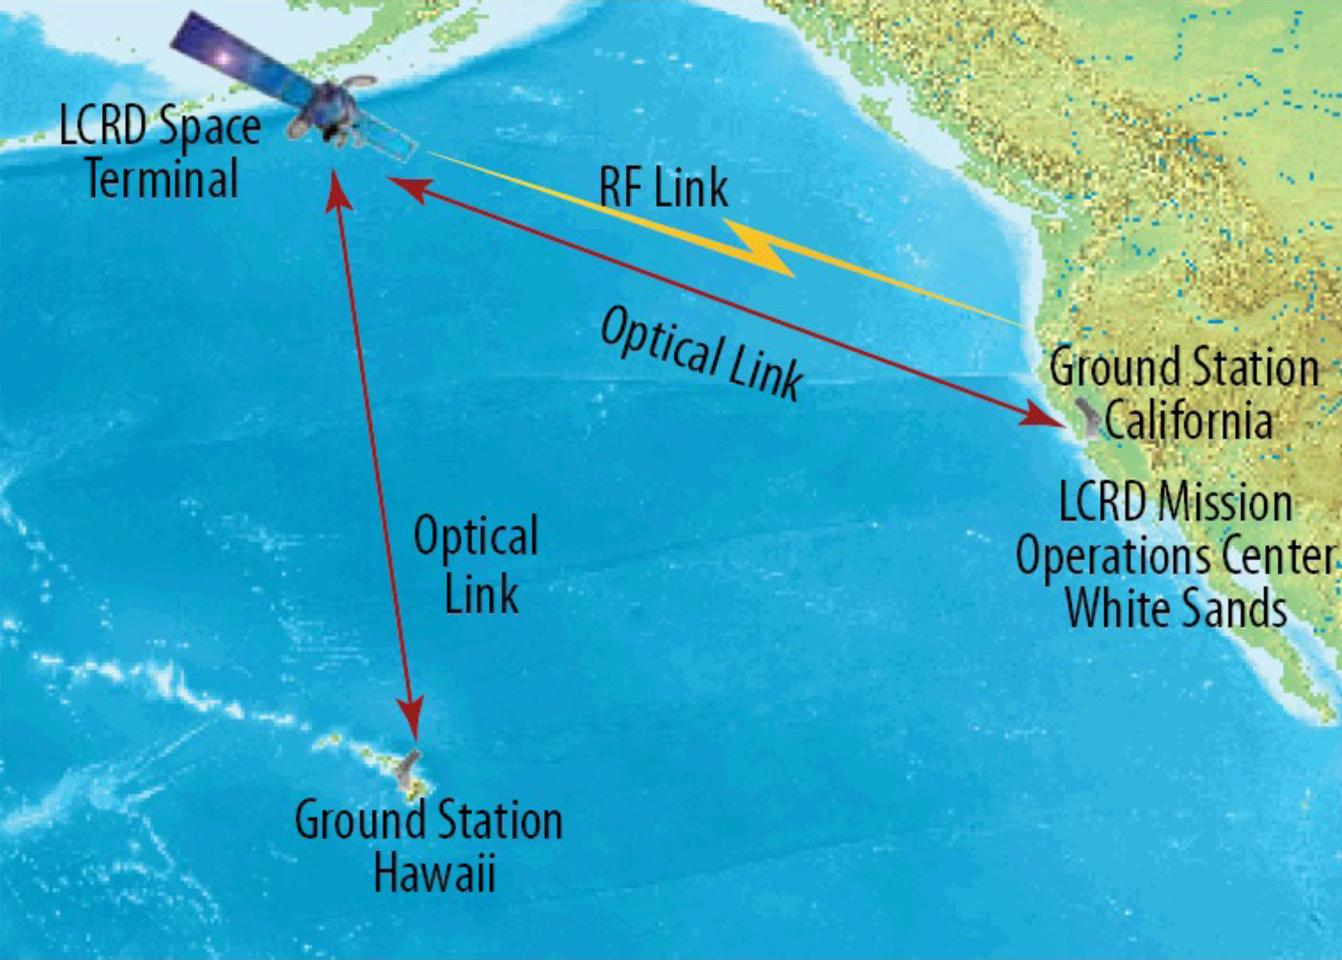 The LCRD would network with multiple ground stations in the event of bad weather (Image: NASA)